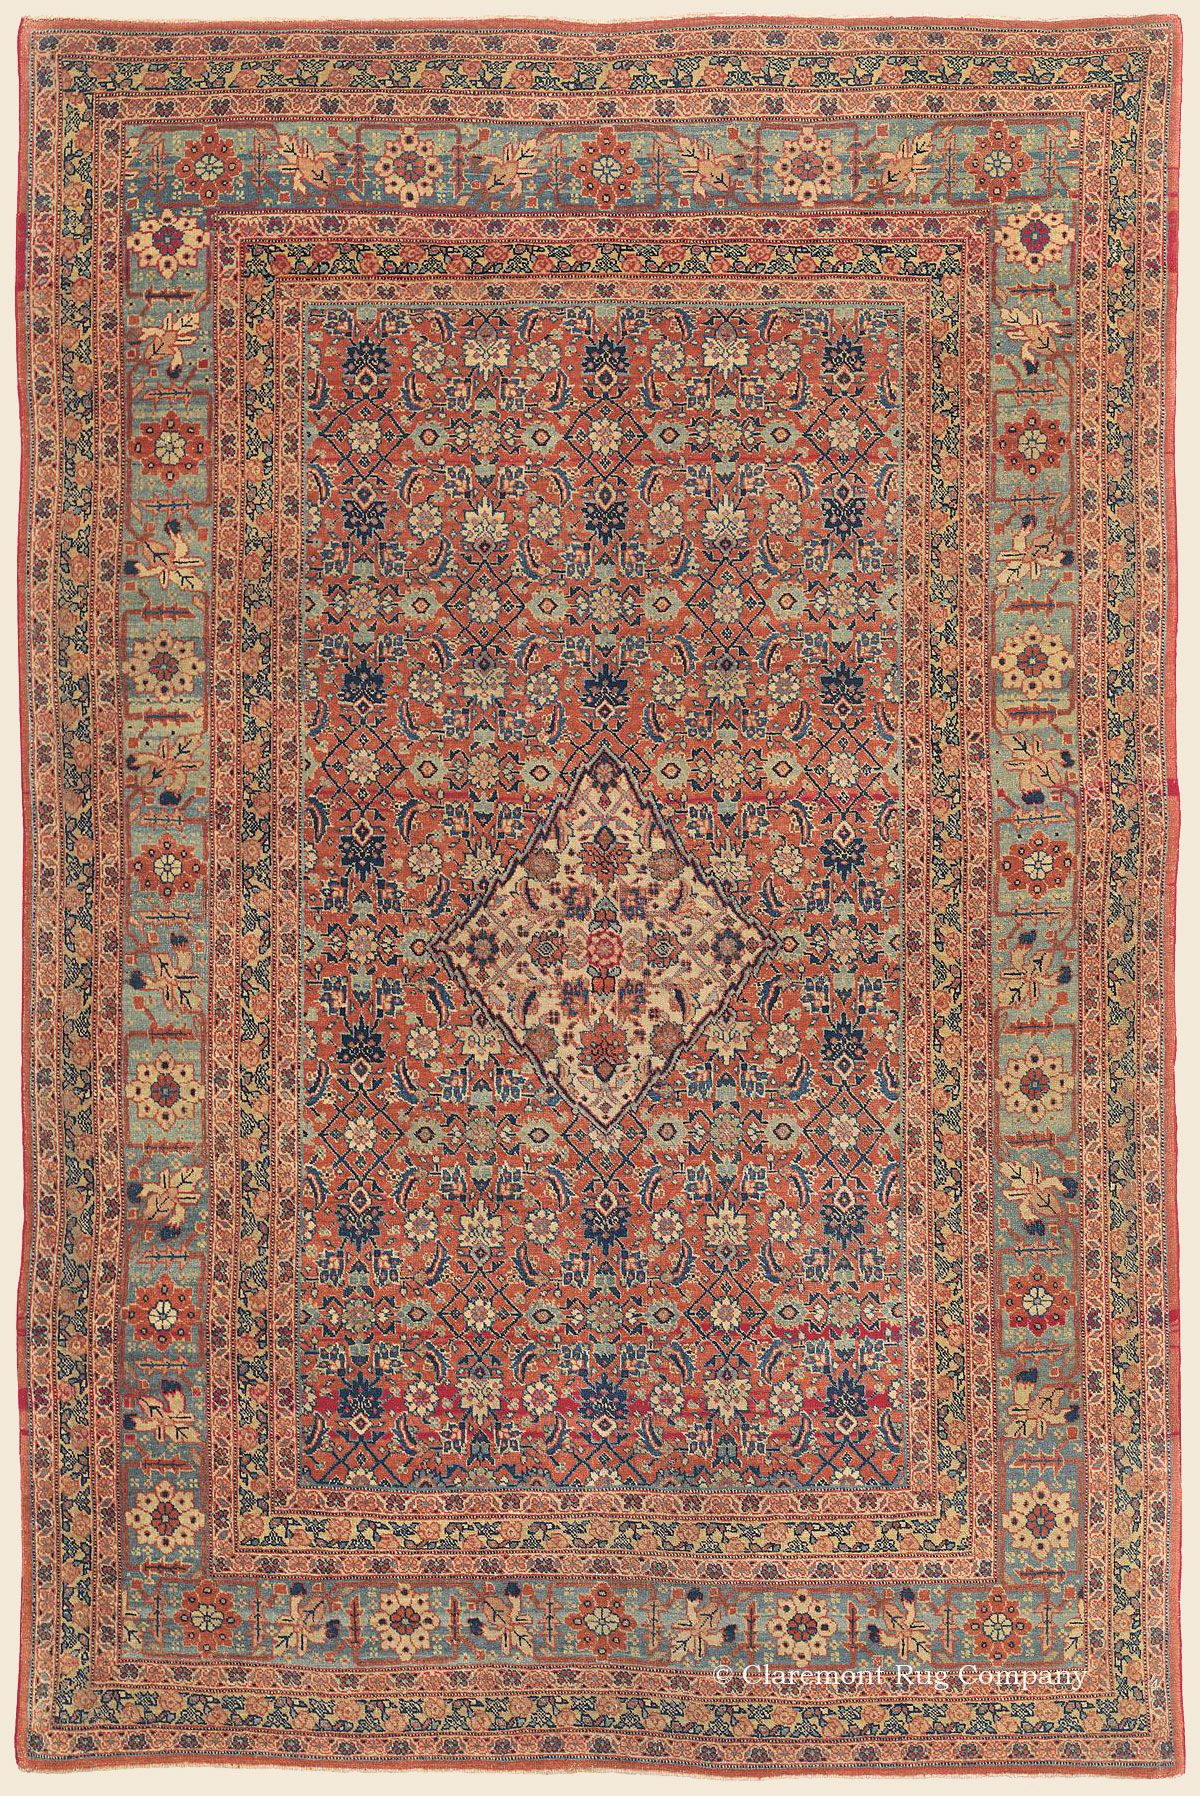 Antique Rugs Fine Persian Carpet Gallery Claremont Rug Company Rugs On Carpet Persian Carpet Antique Persian Carpet